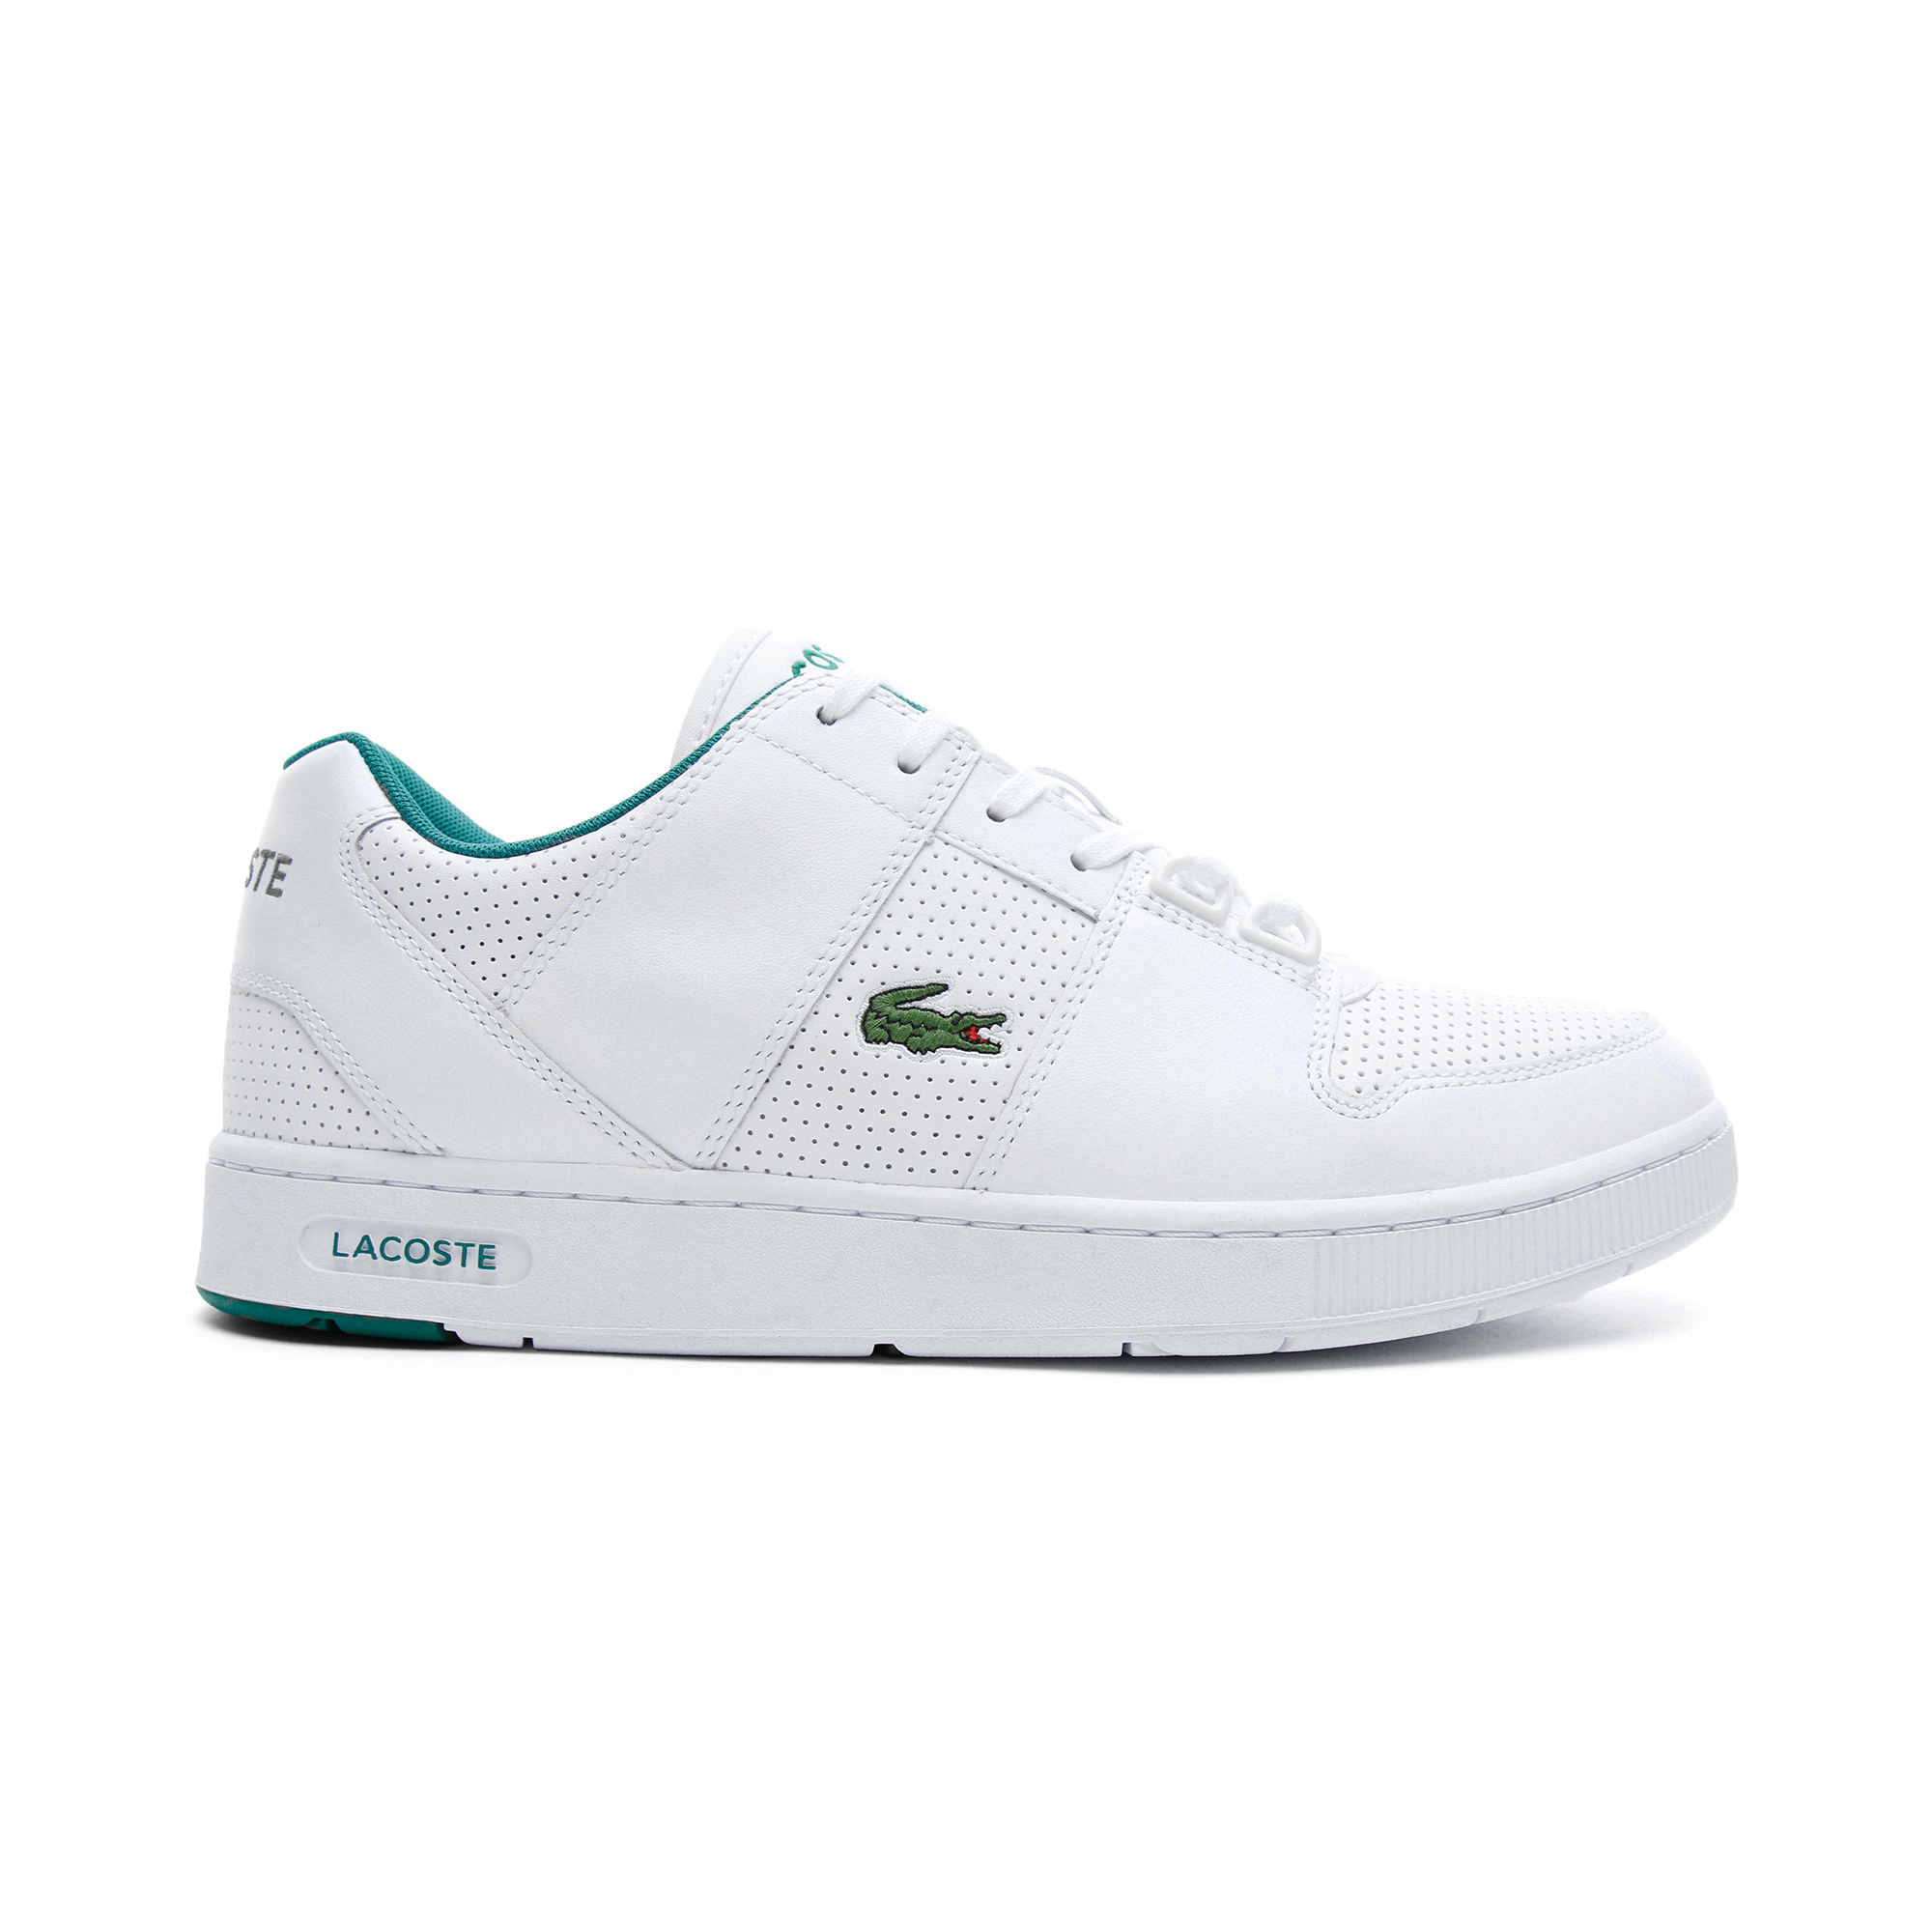 КРОСІВКИ LACOSTE THRILL 319 1